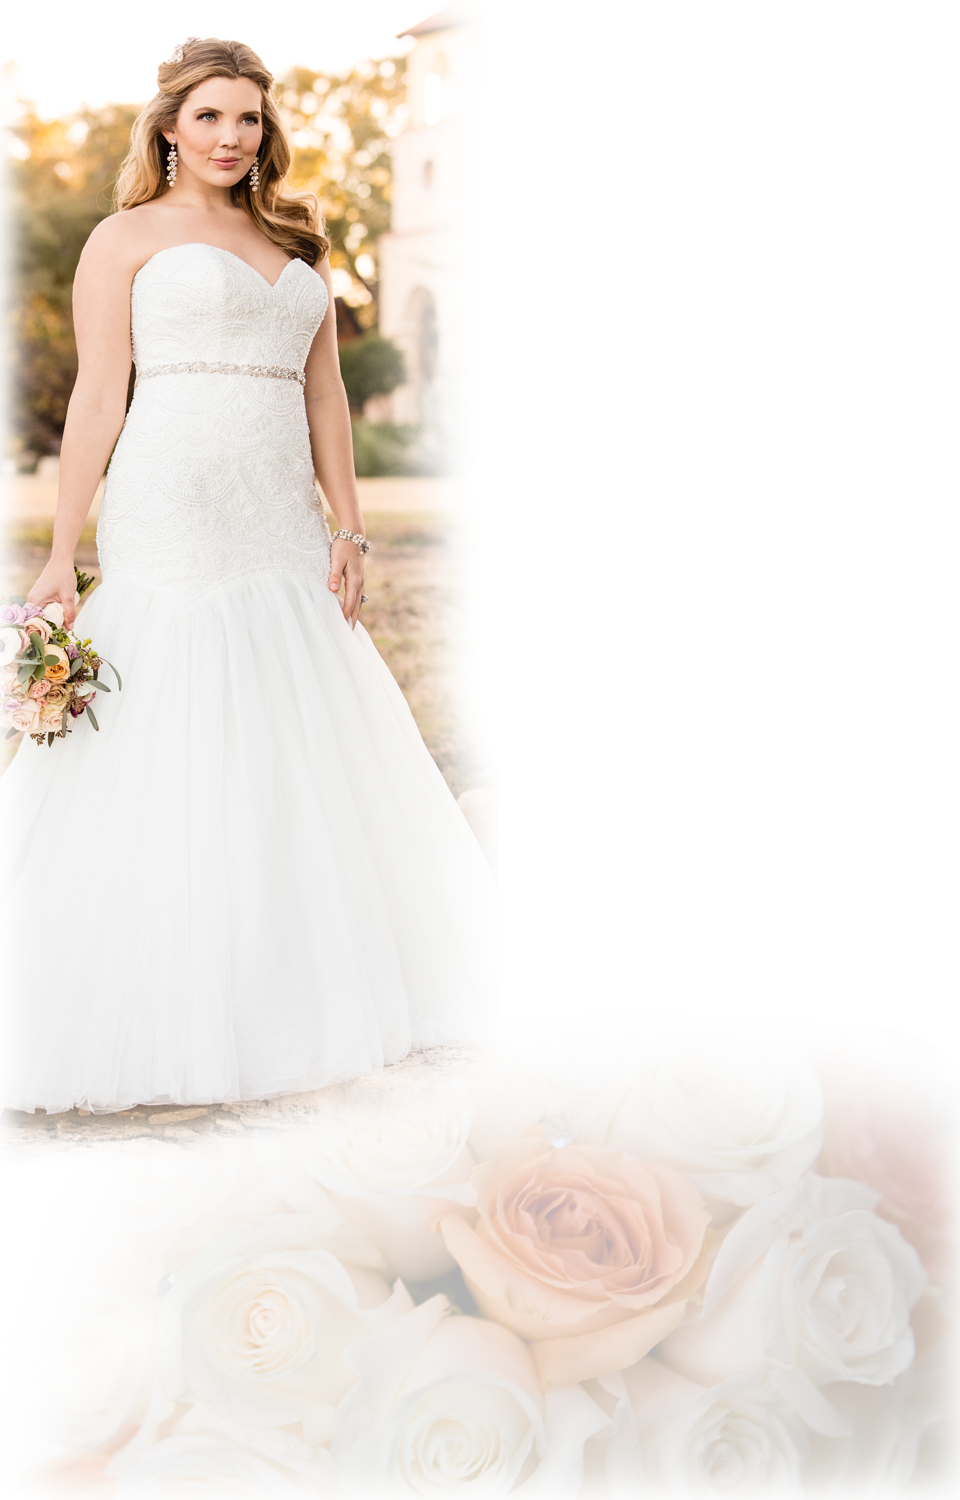 100+ Wedding Dresses In Chicago Il - Women\'s Dresses for Wedding ...